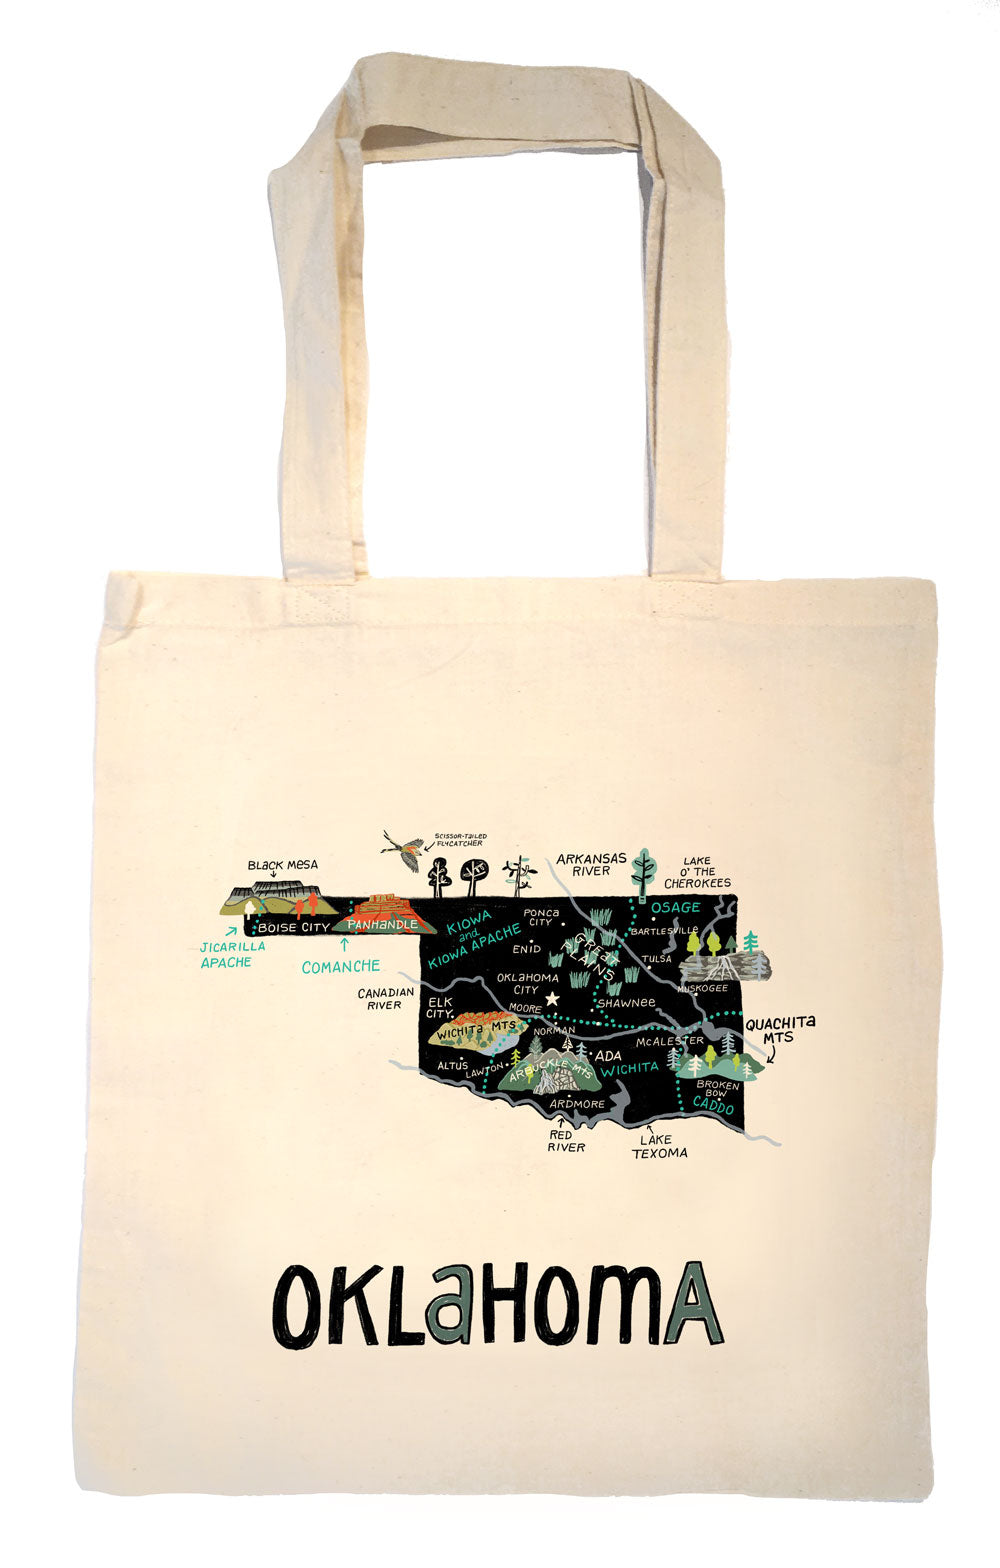 State of Oklahoma Tote Bag